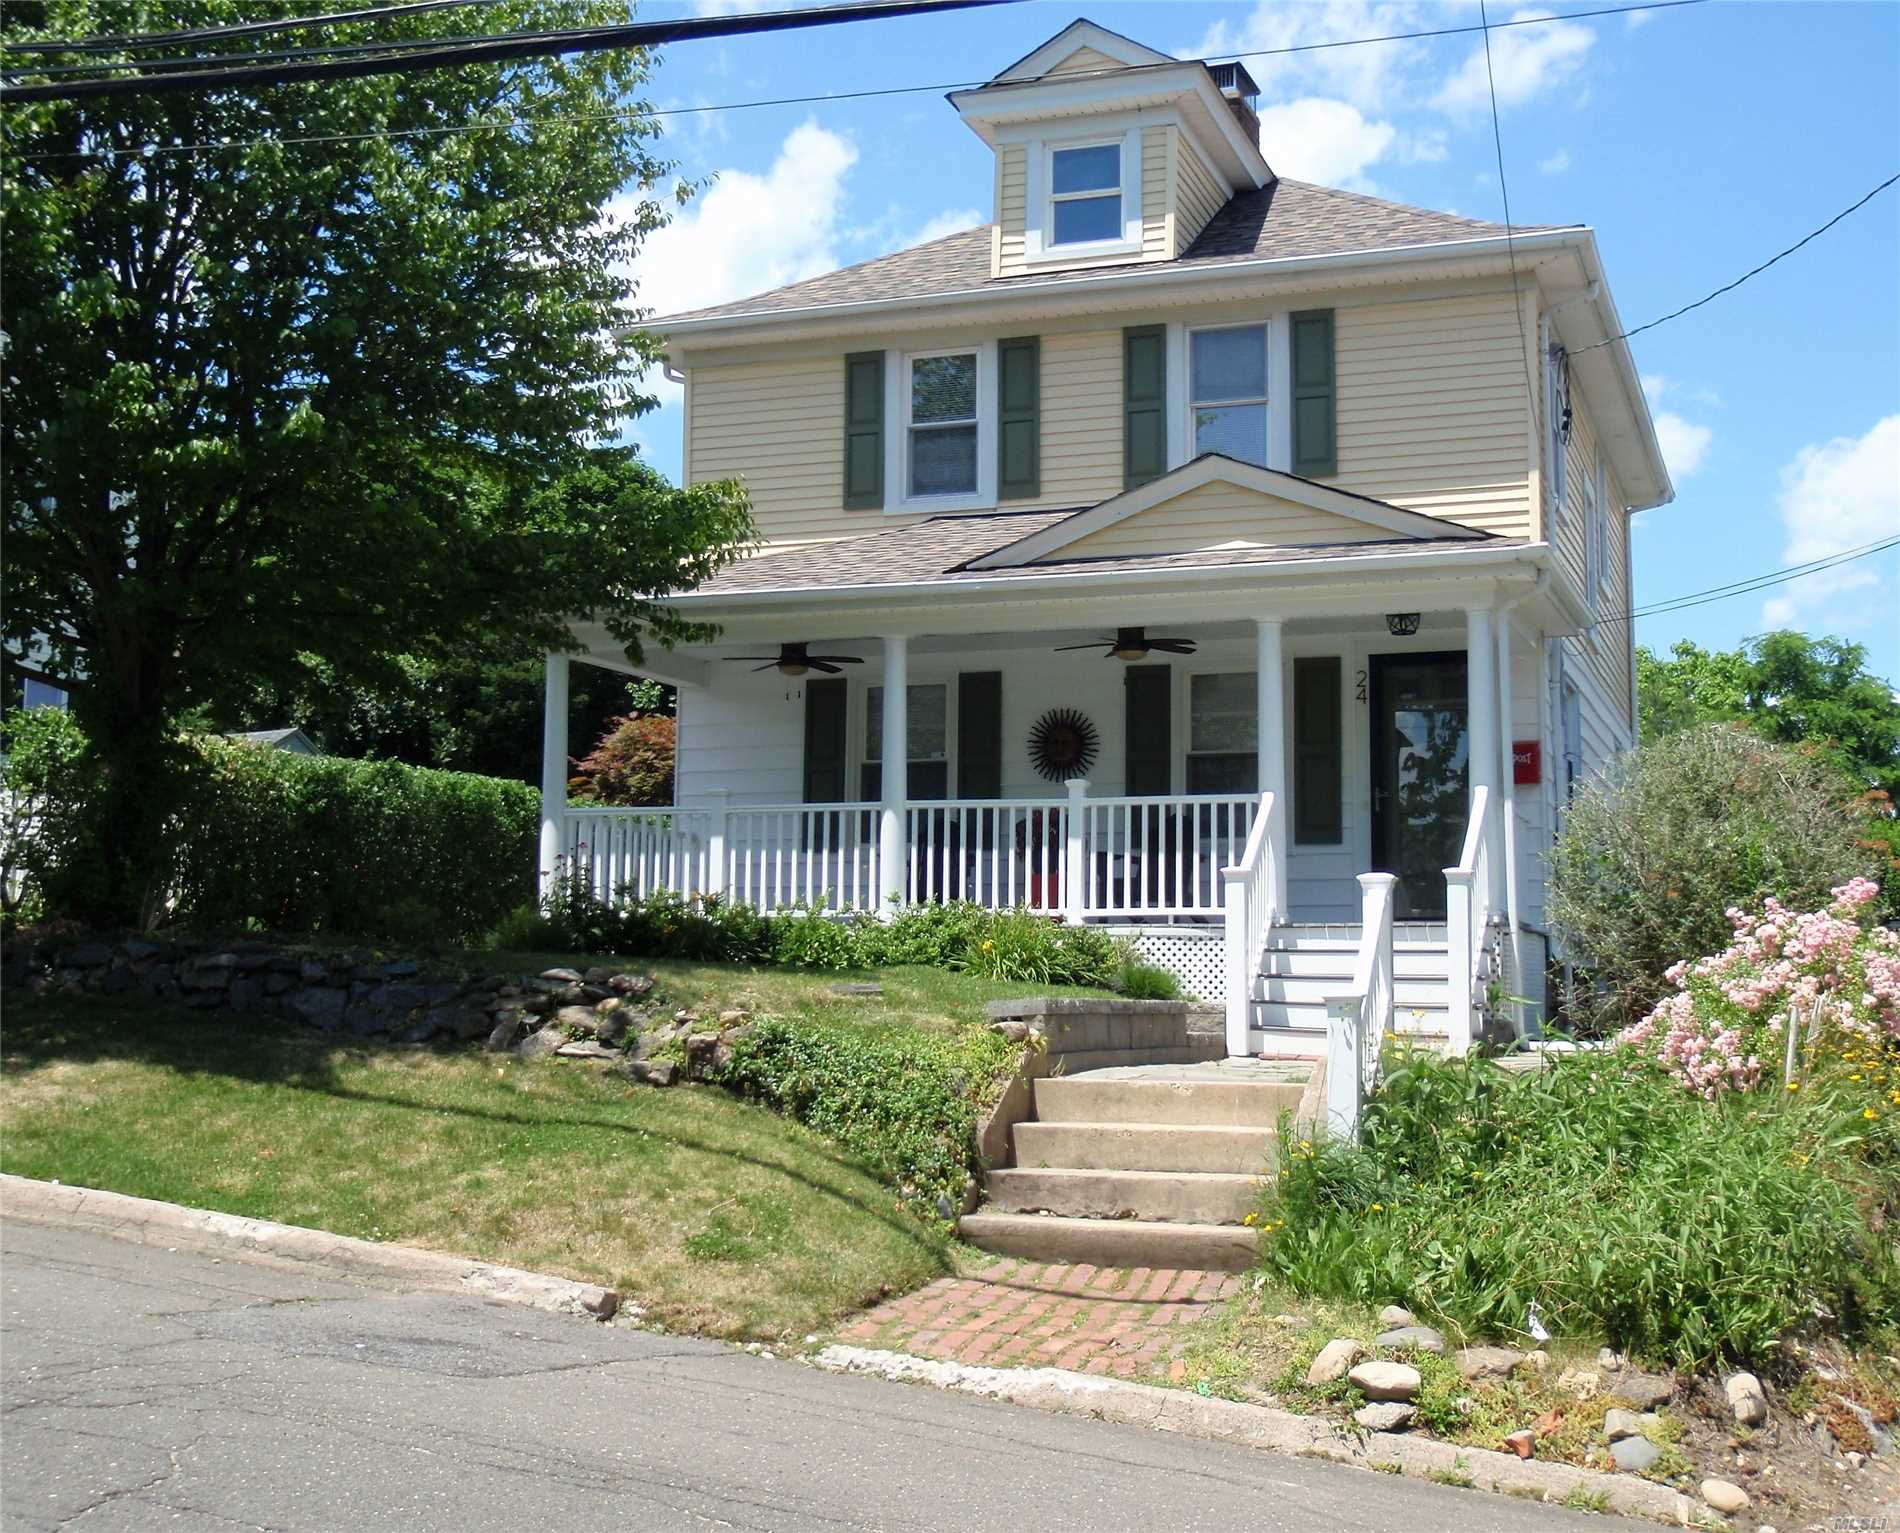 Gut Renovated In 2014 - All New Lovely Village Colonial- Cac, Gorgeous Kitchen, Fpl, 2.5 Baths,  Front Porch, Patio, Yard & Det. Garage. This Home Has The Charm Of Days Gone By & The Modern Luxuries Needed For Today's Living.